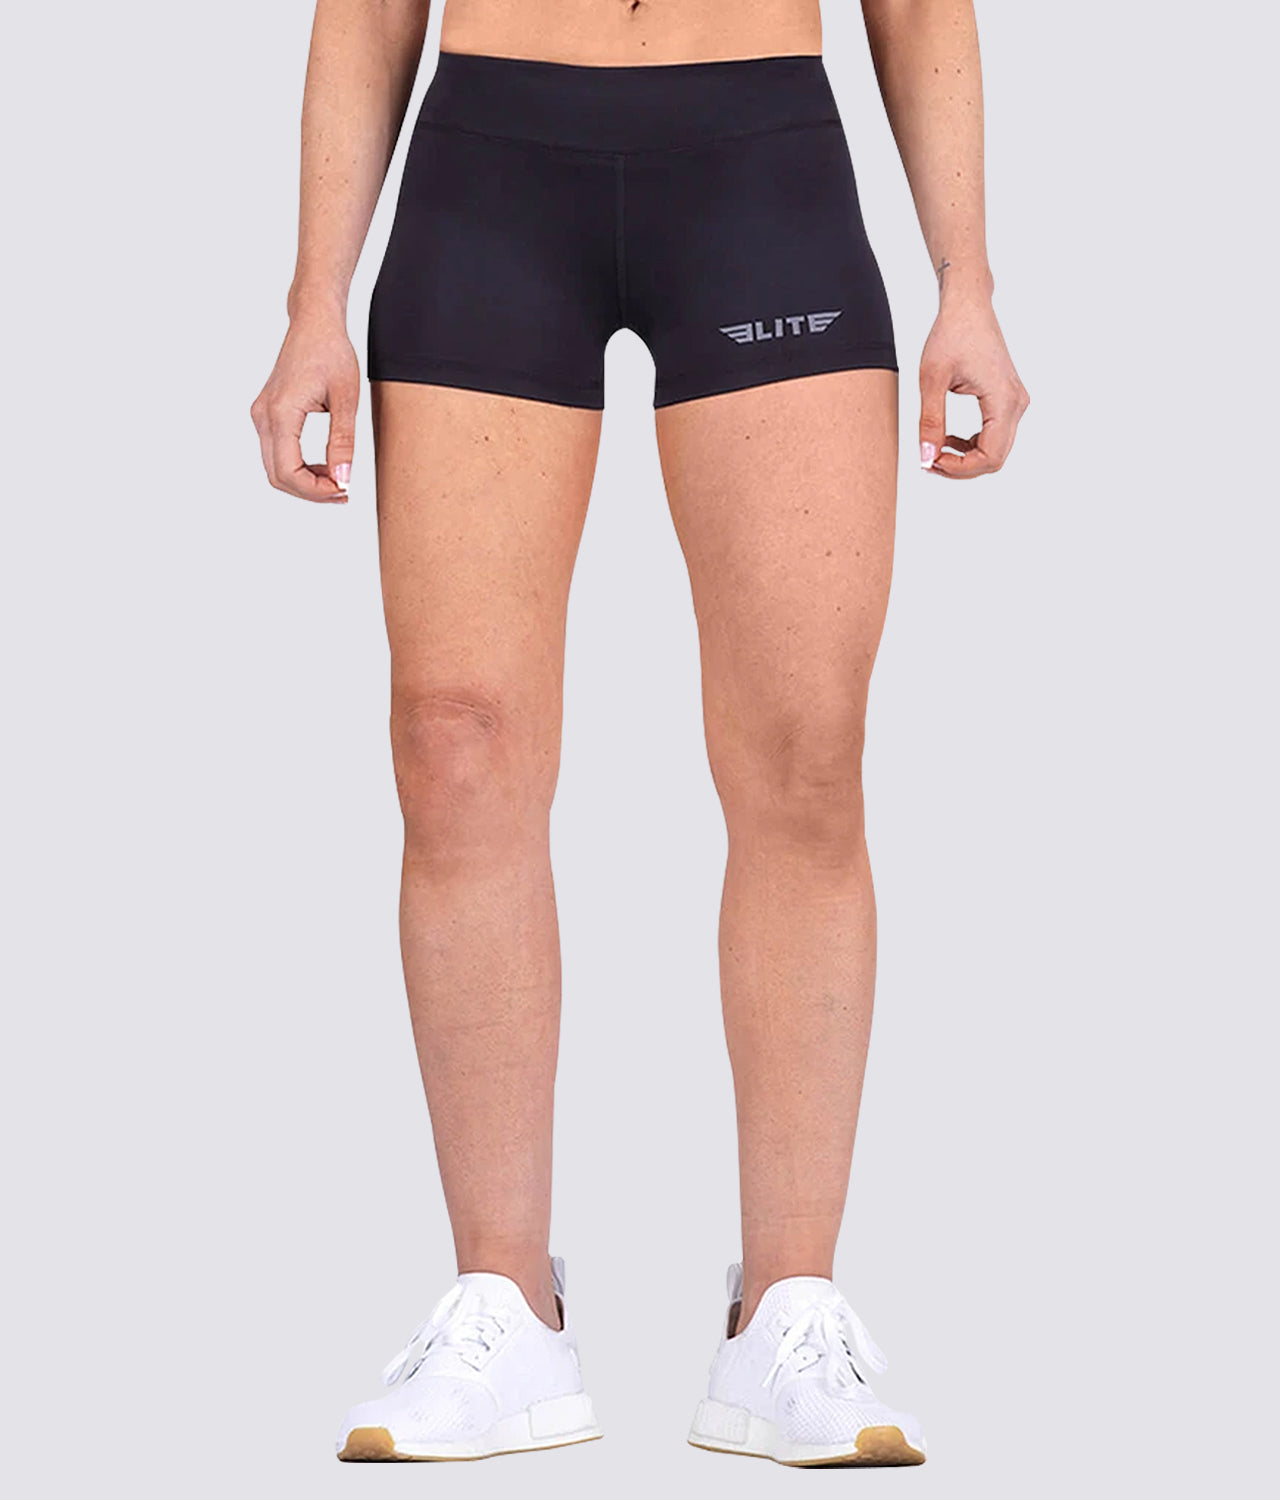 Elite Sports Extreme Softness Women Plain Black MMA Shorts